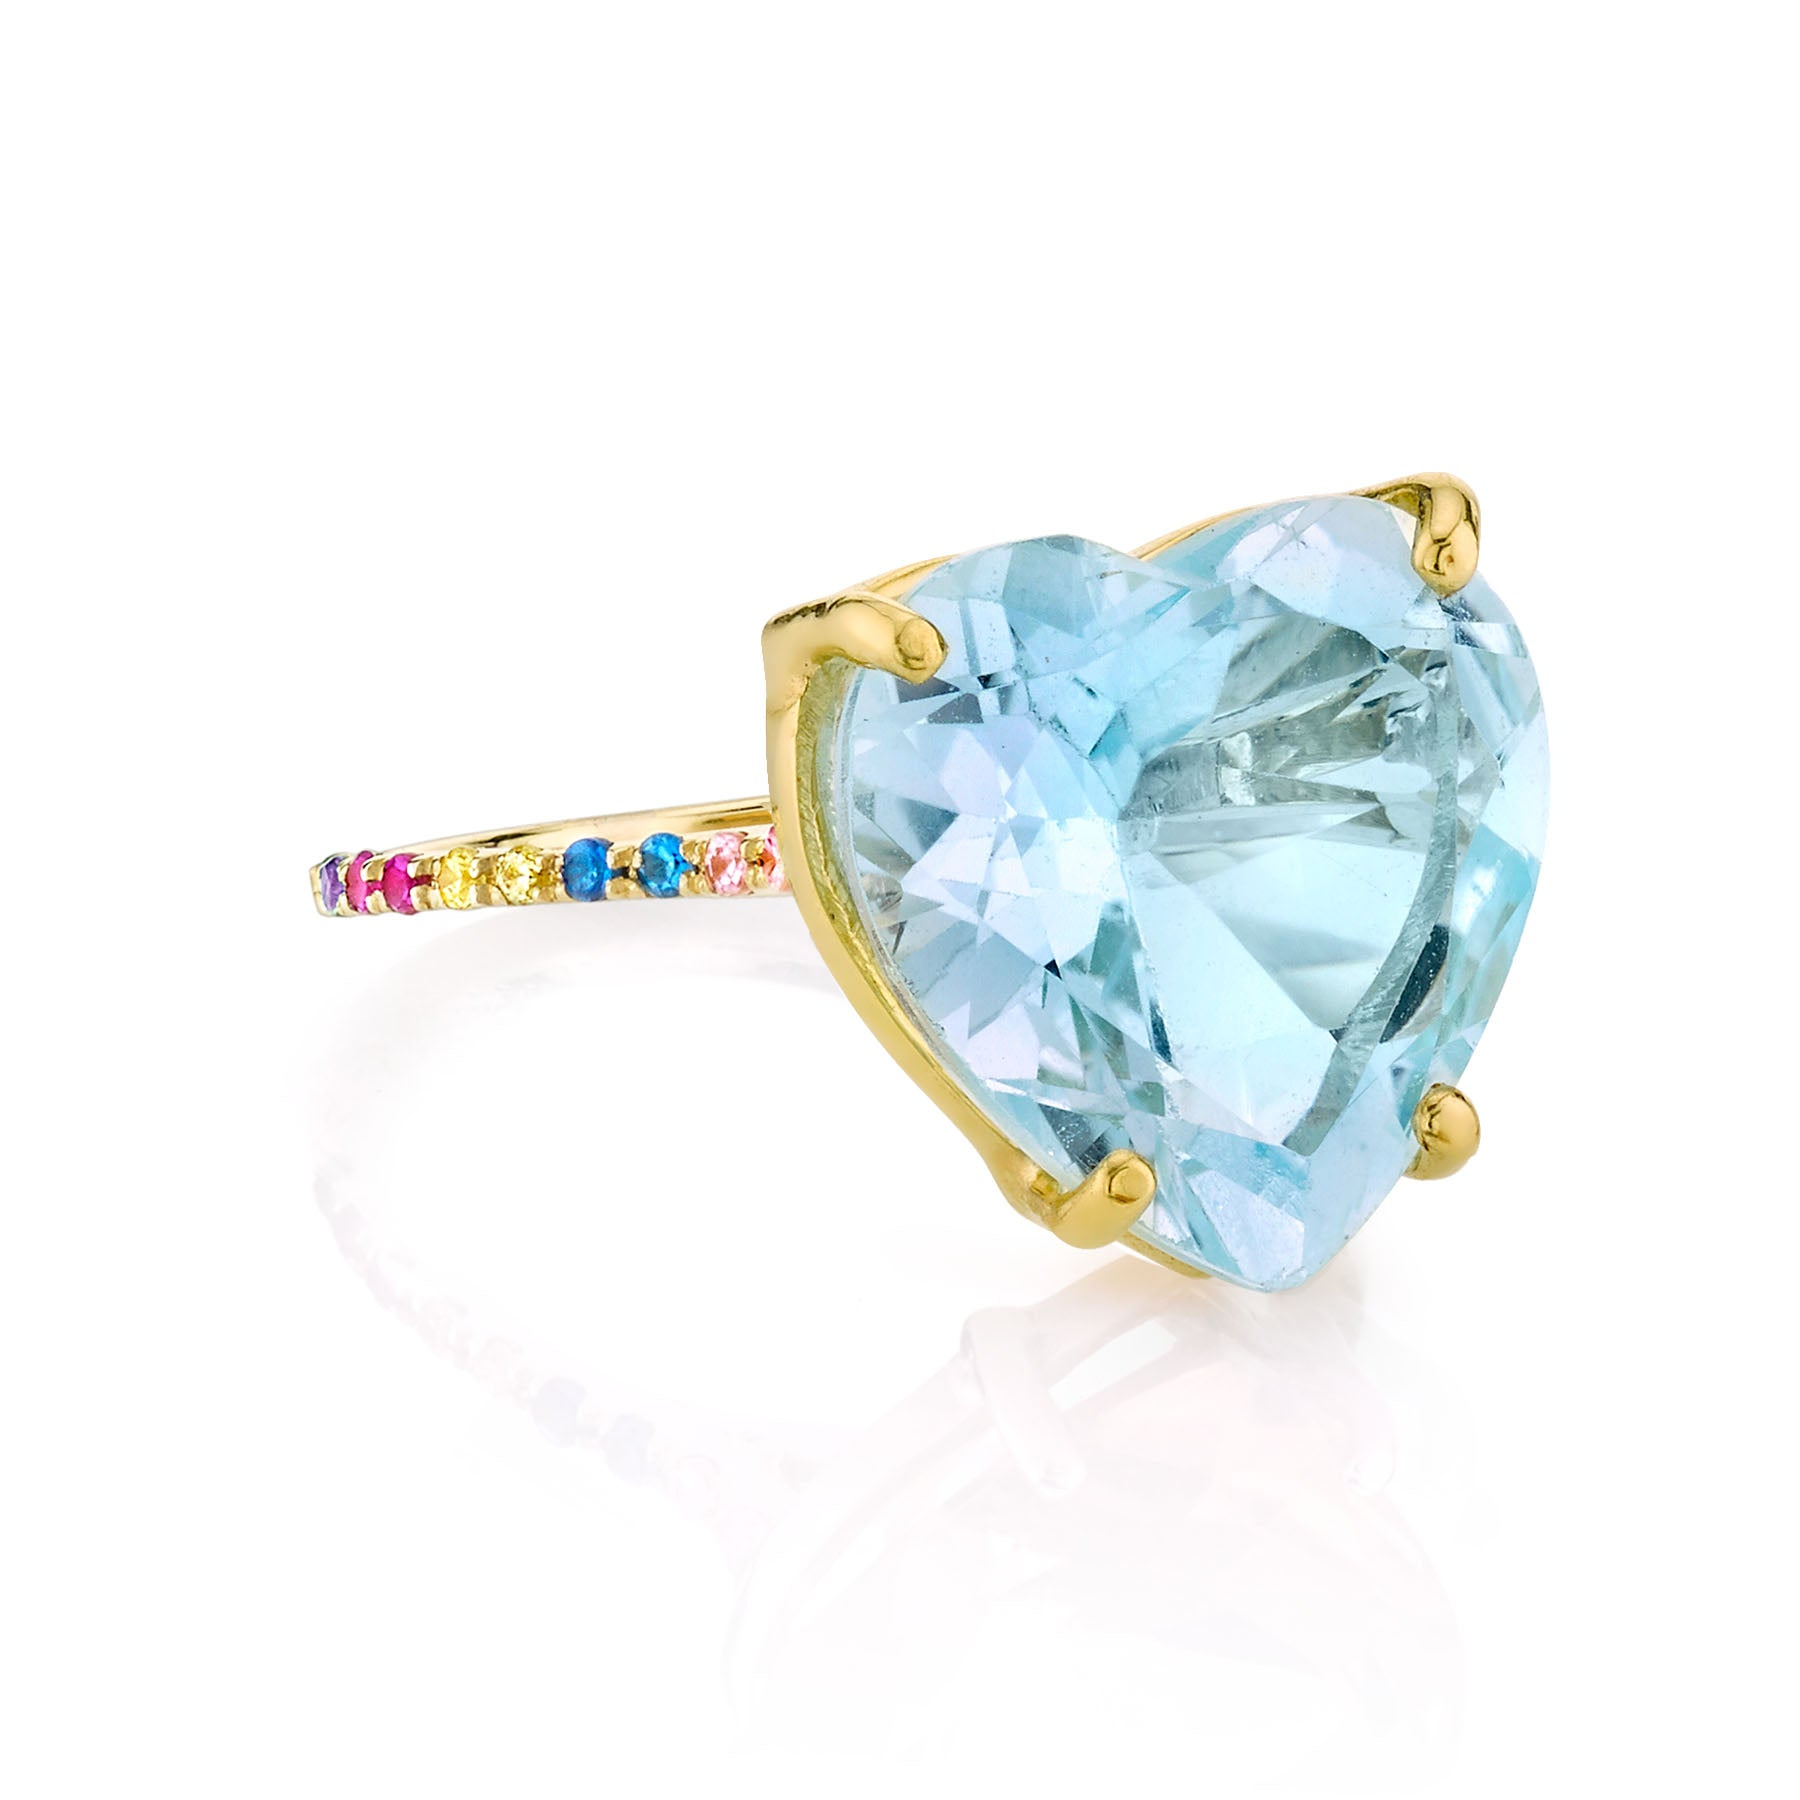 BLUE TOPAZ AND RAINBOW HEART RING